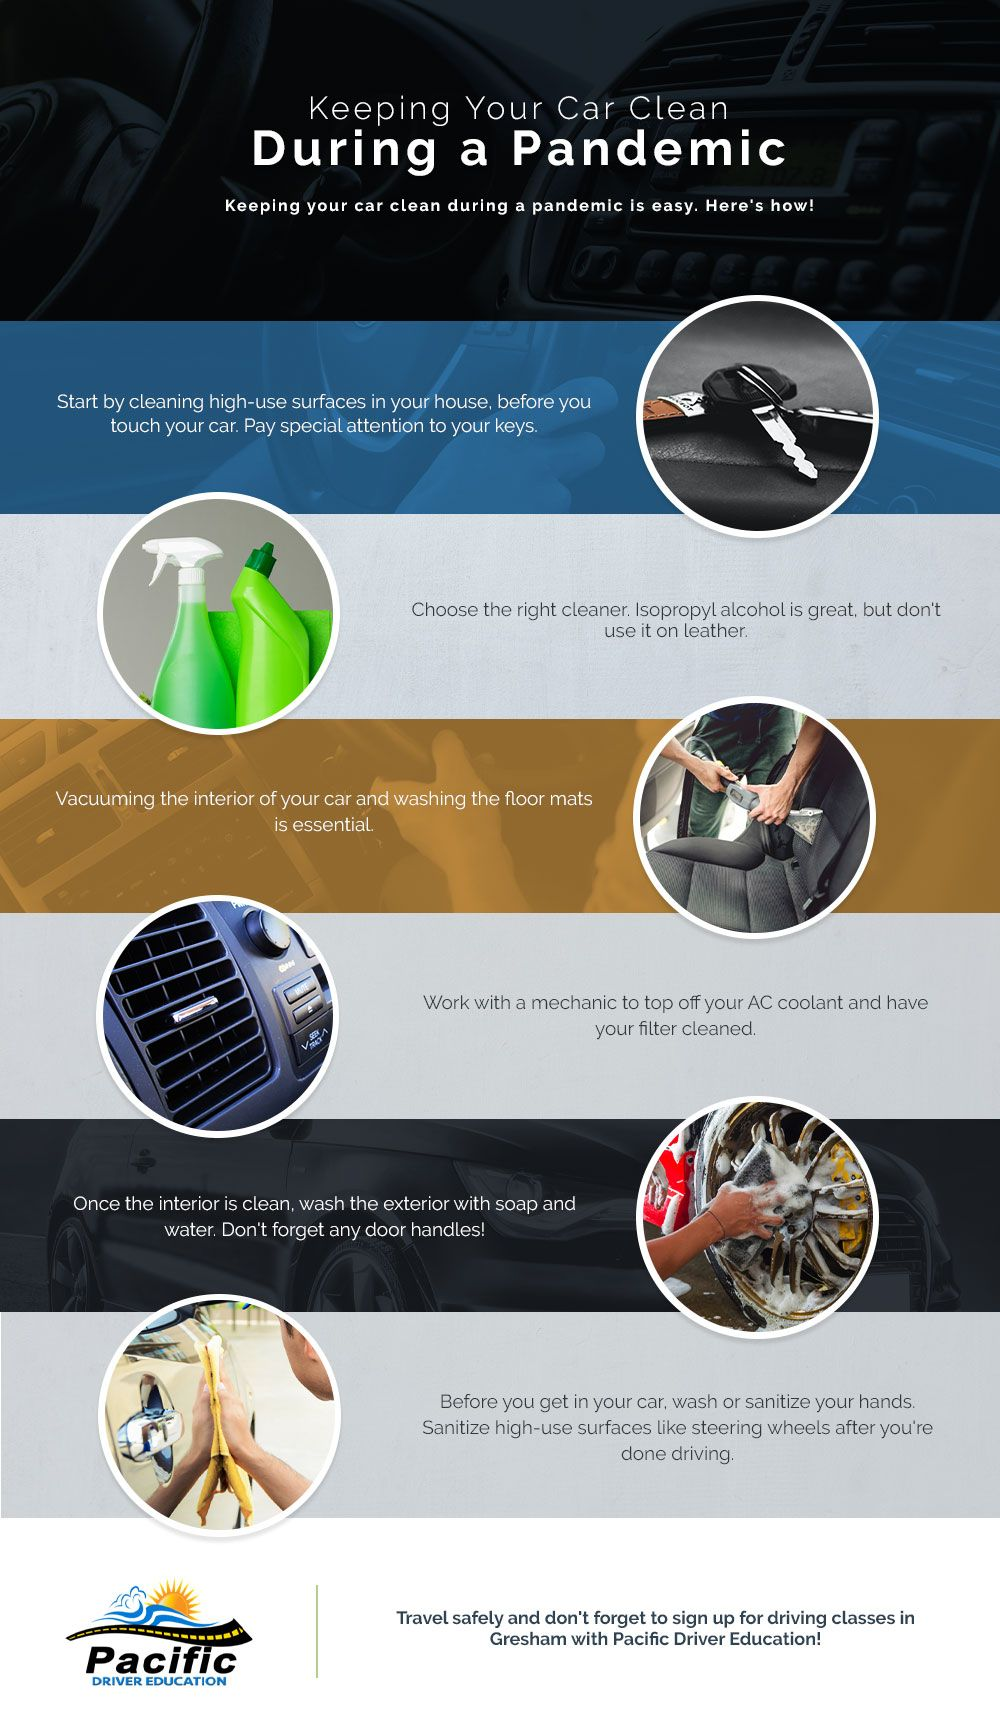 keepingcarclean-infographic-5ebed23146355.jpg